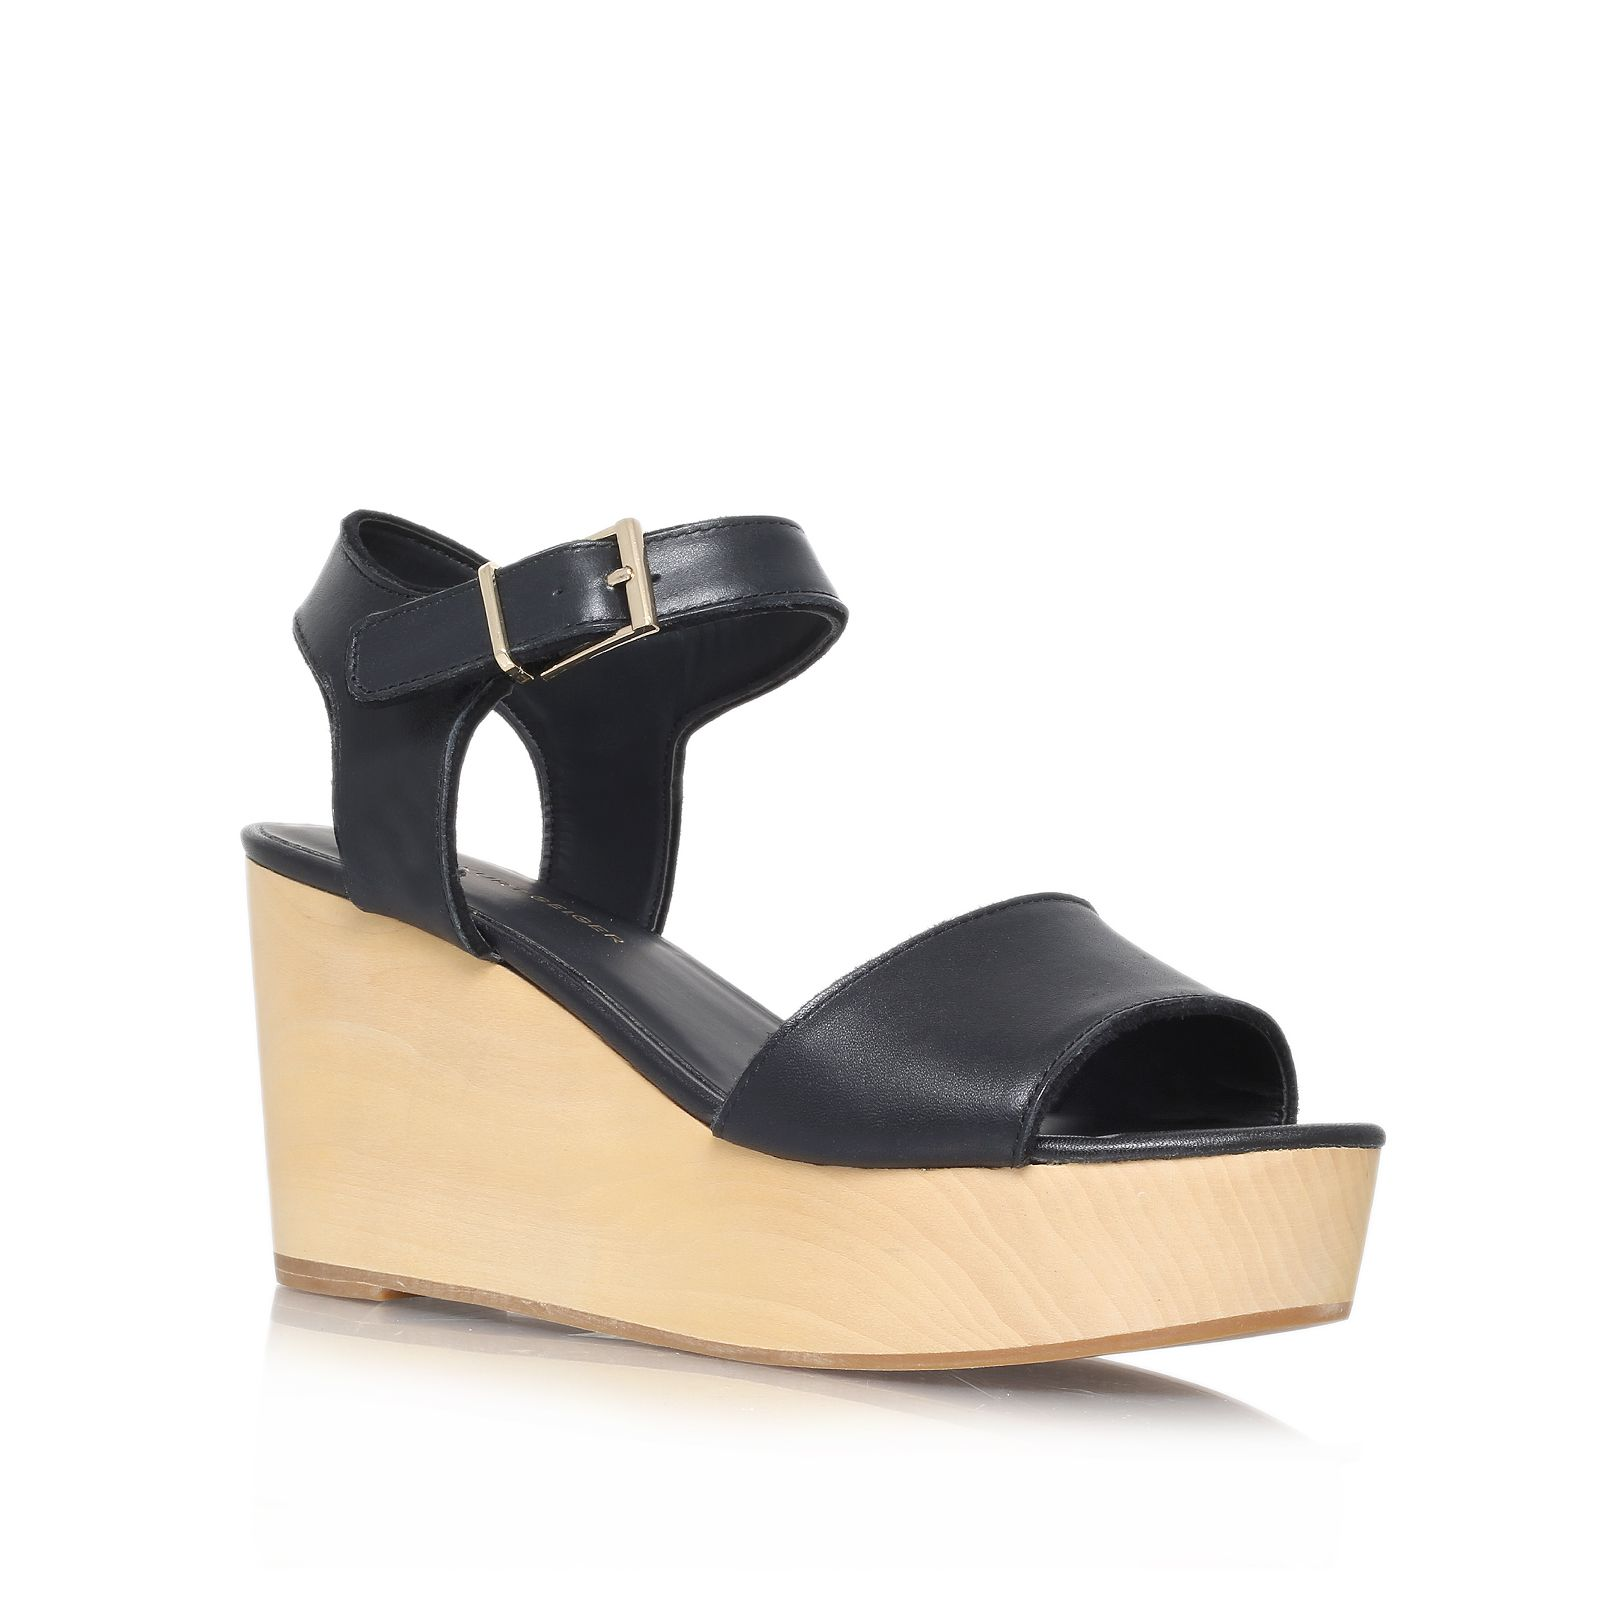 Nia high heel wedge sandals